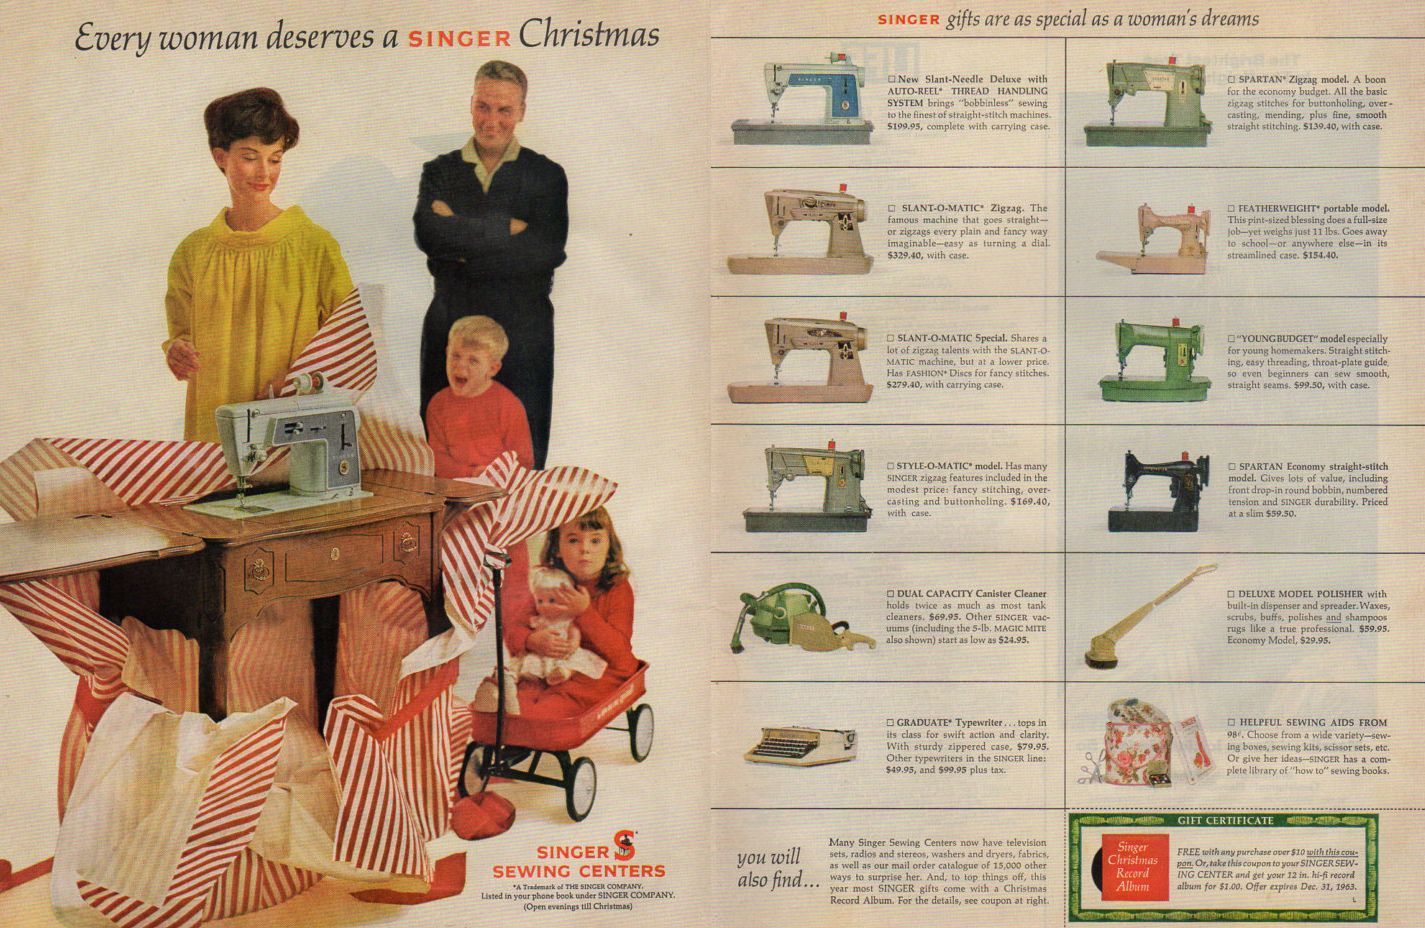 These vintage sewing machine Christmas ads on Quilter's Bug are simply beautiful! To see more, please visit: https://quilters-bug.myshopify.com/blogs/vsm-collecting/vintage-sewing-machine-christmas-ads